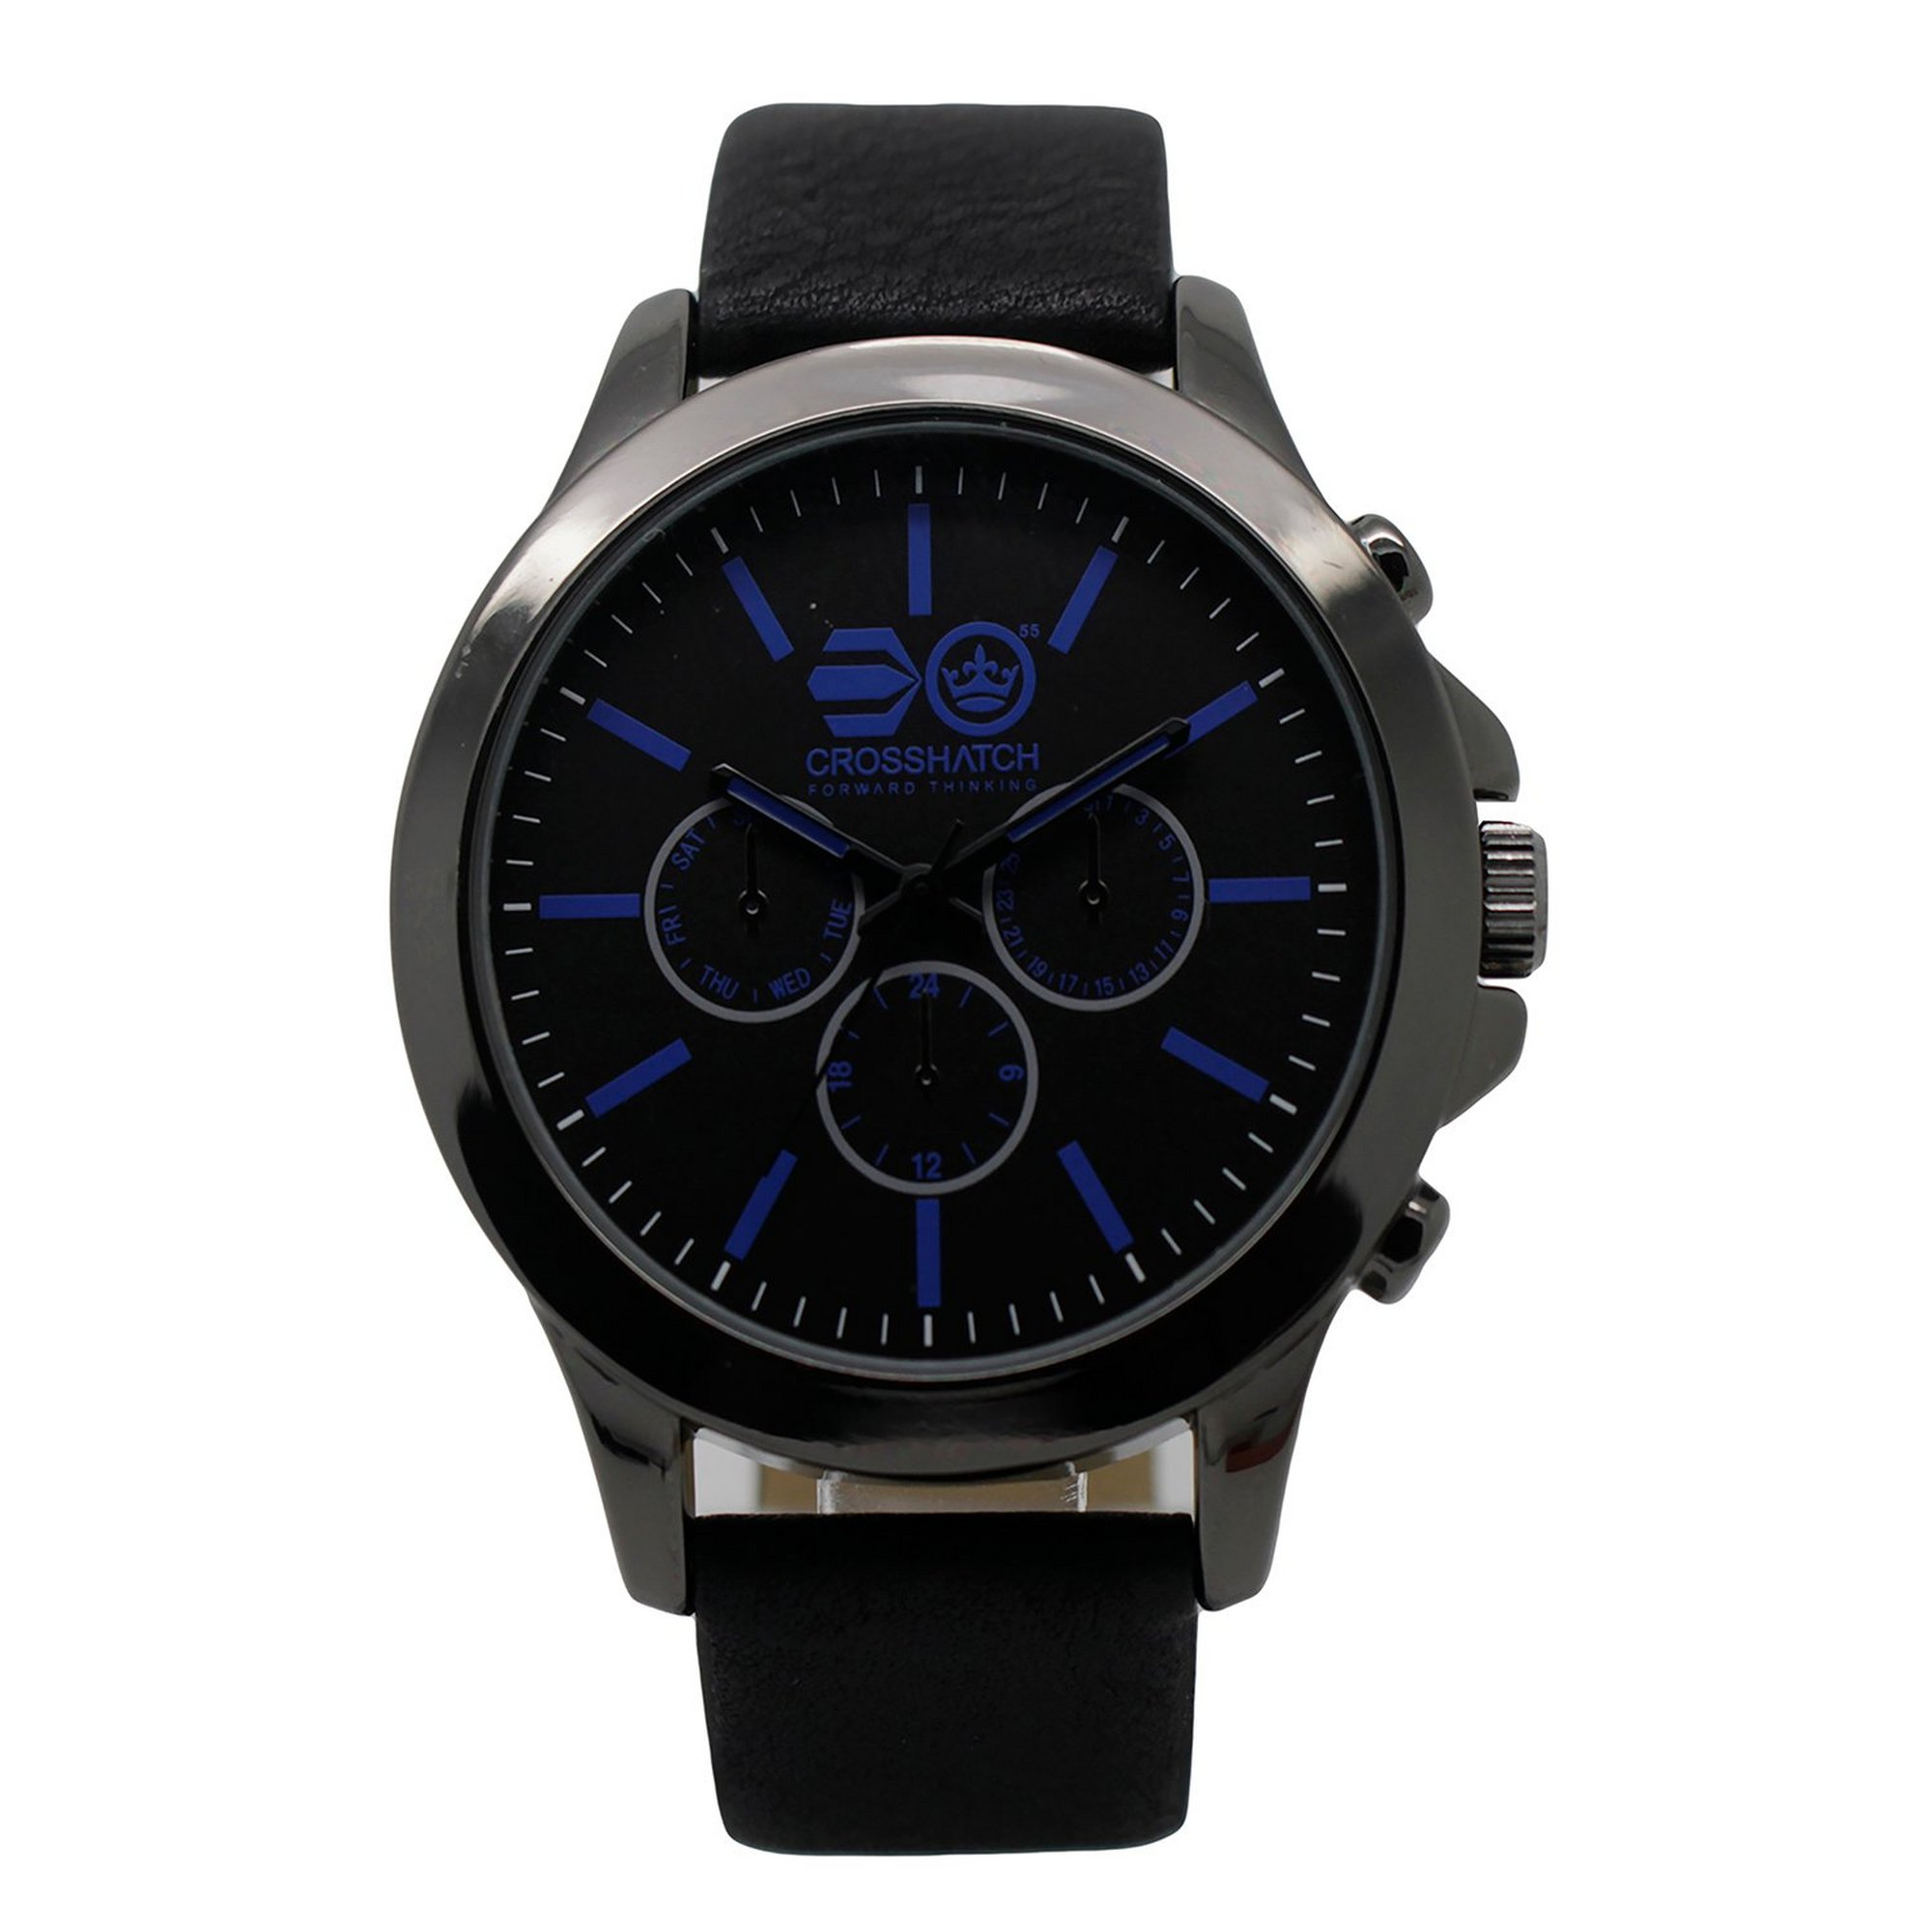 Image of Crosshatch Black and Blue Strap Watch